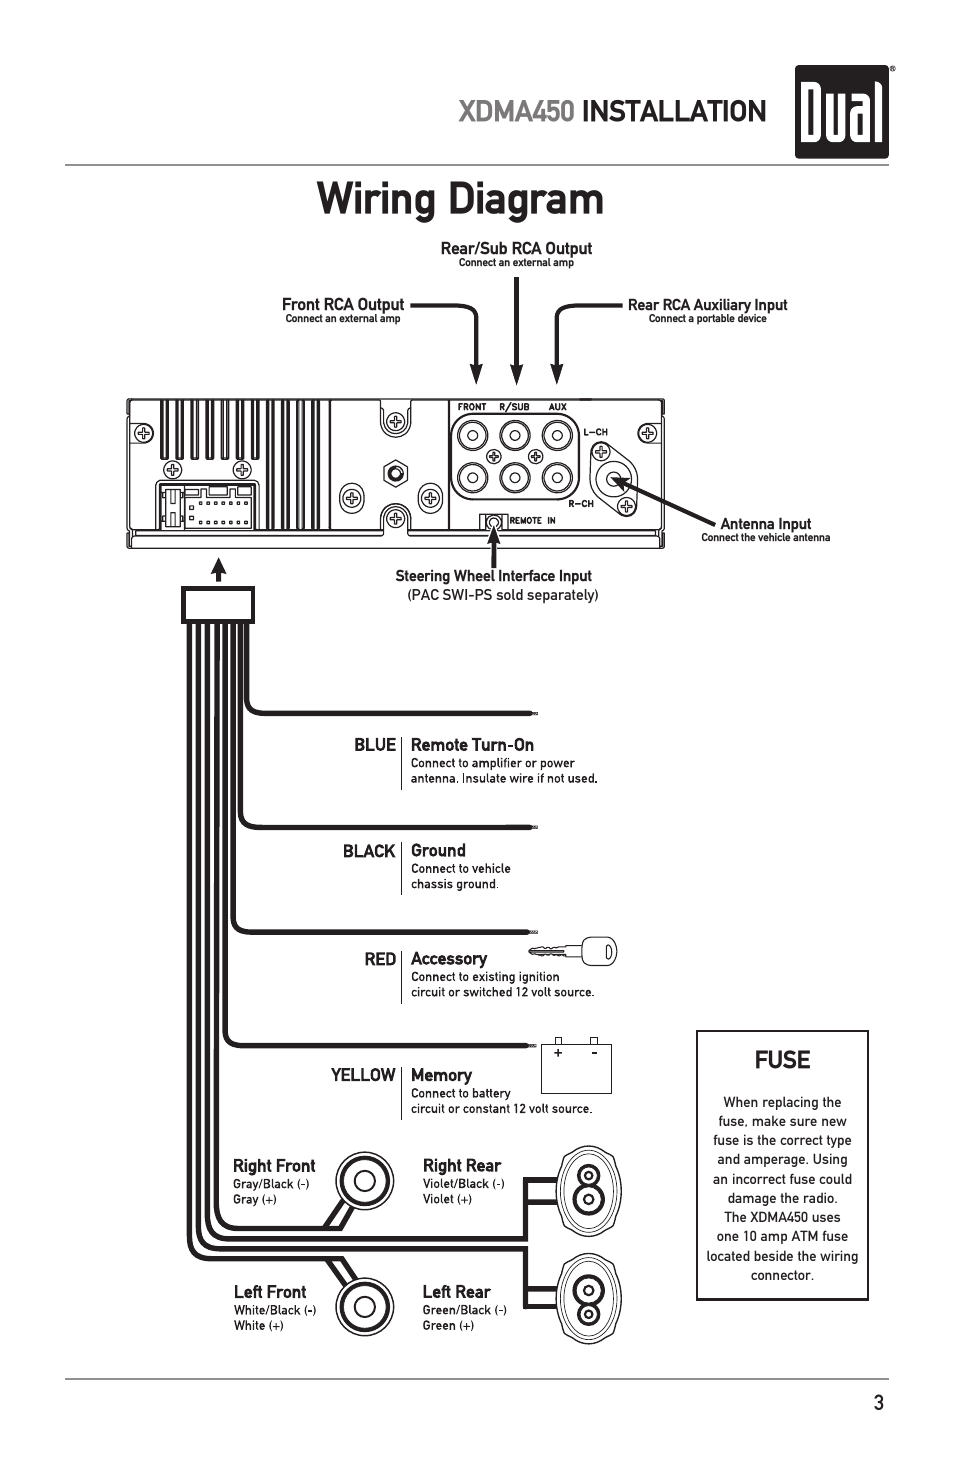 Wiring Diagram Xdma450 Installation Fuse Dual Electronics Without Subs And Amp User Manual Page 3 28